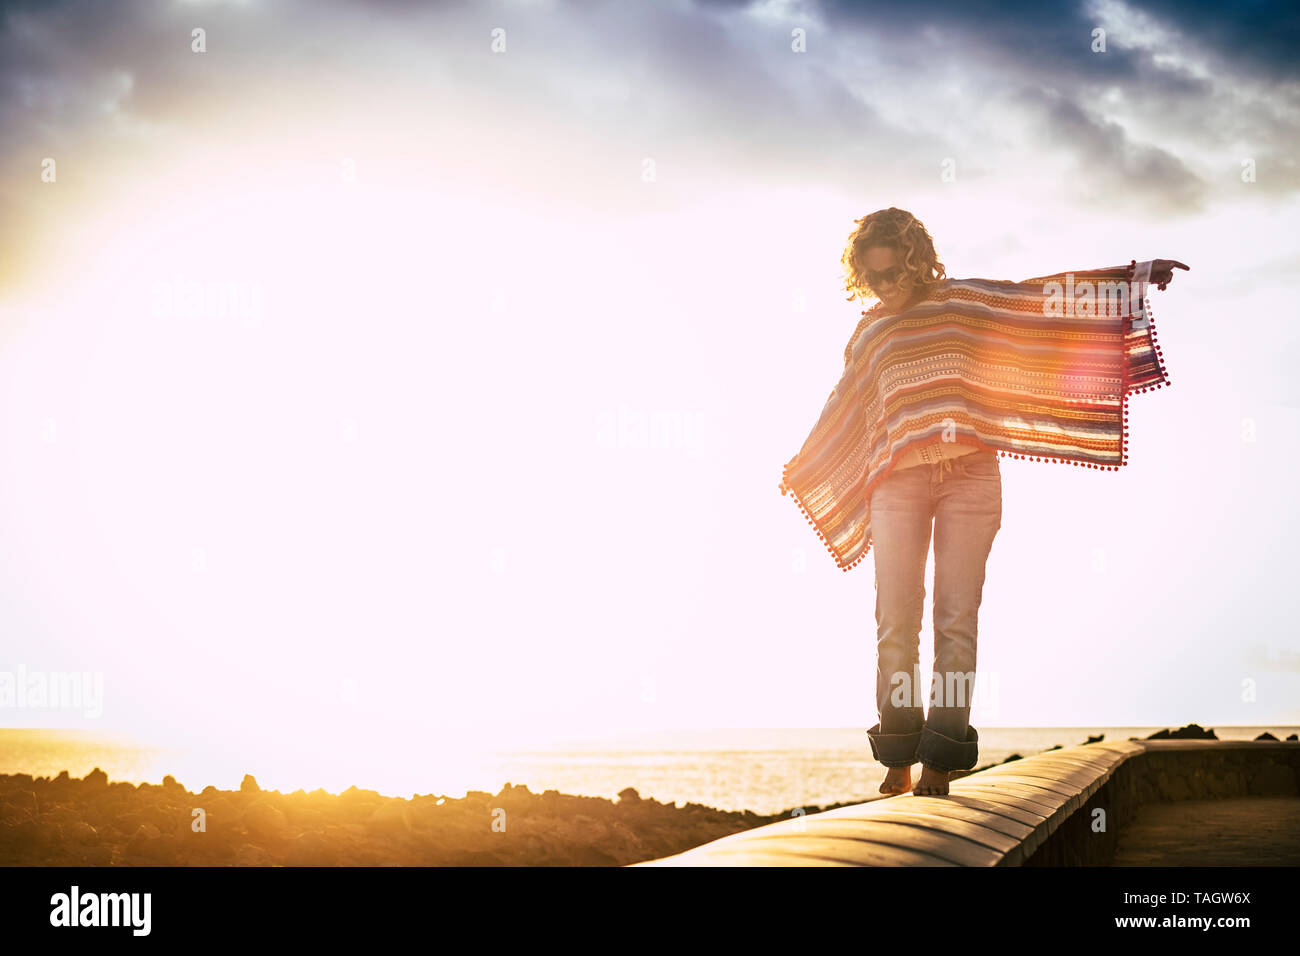 Young people enjoying outdoor leisure activity - beautiful cheerful woman walking barefoot in balance with coloured poncho - sunset and ocean in backg - Stock Image